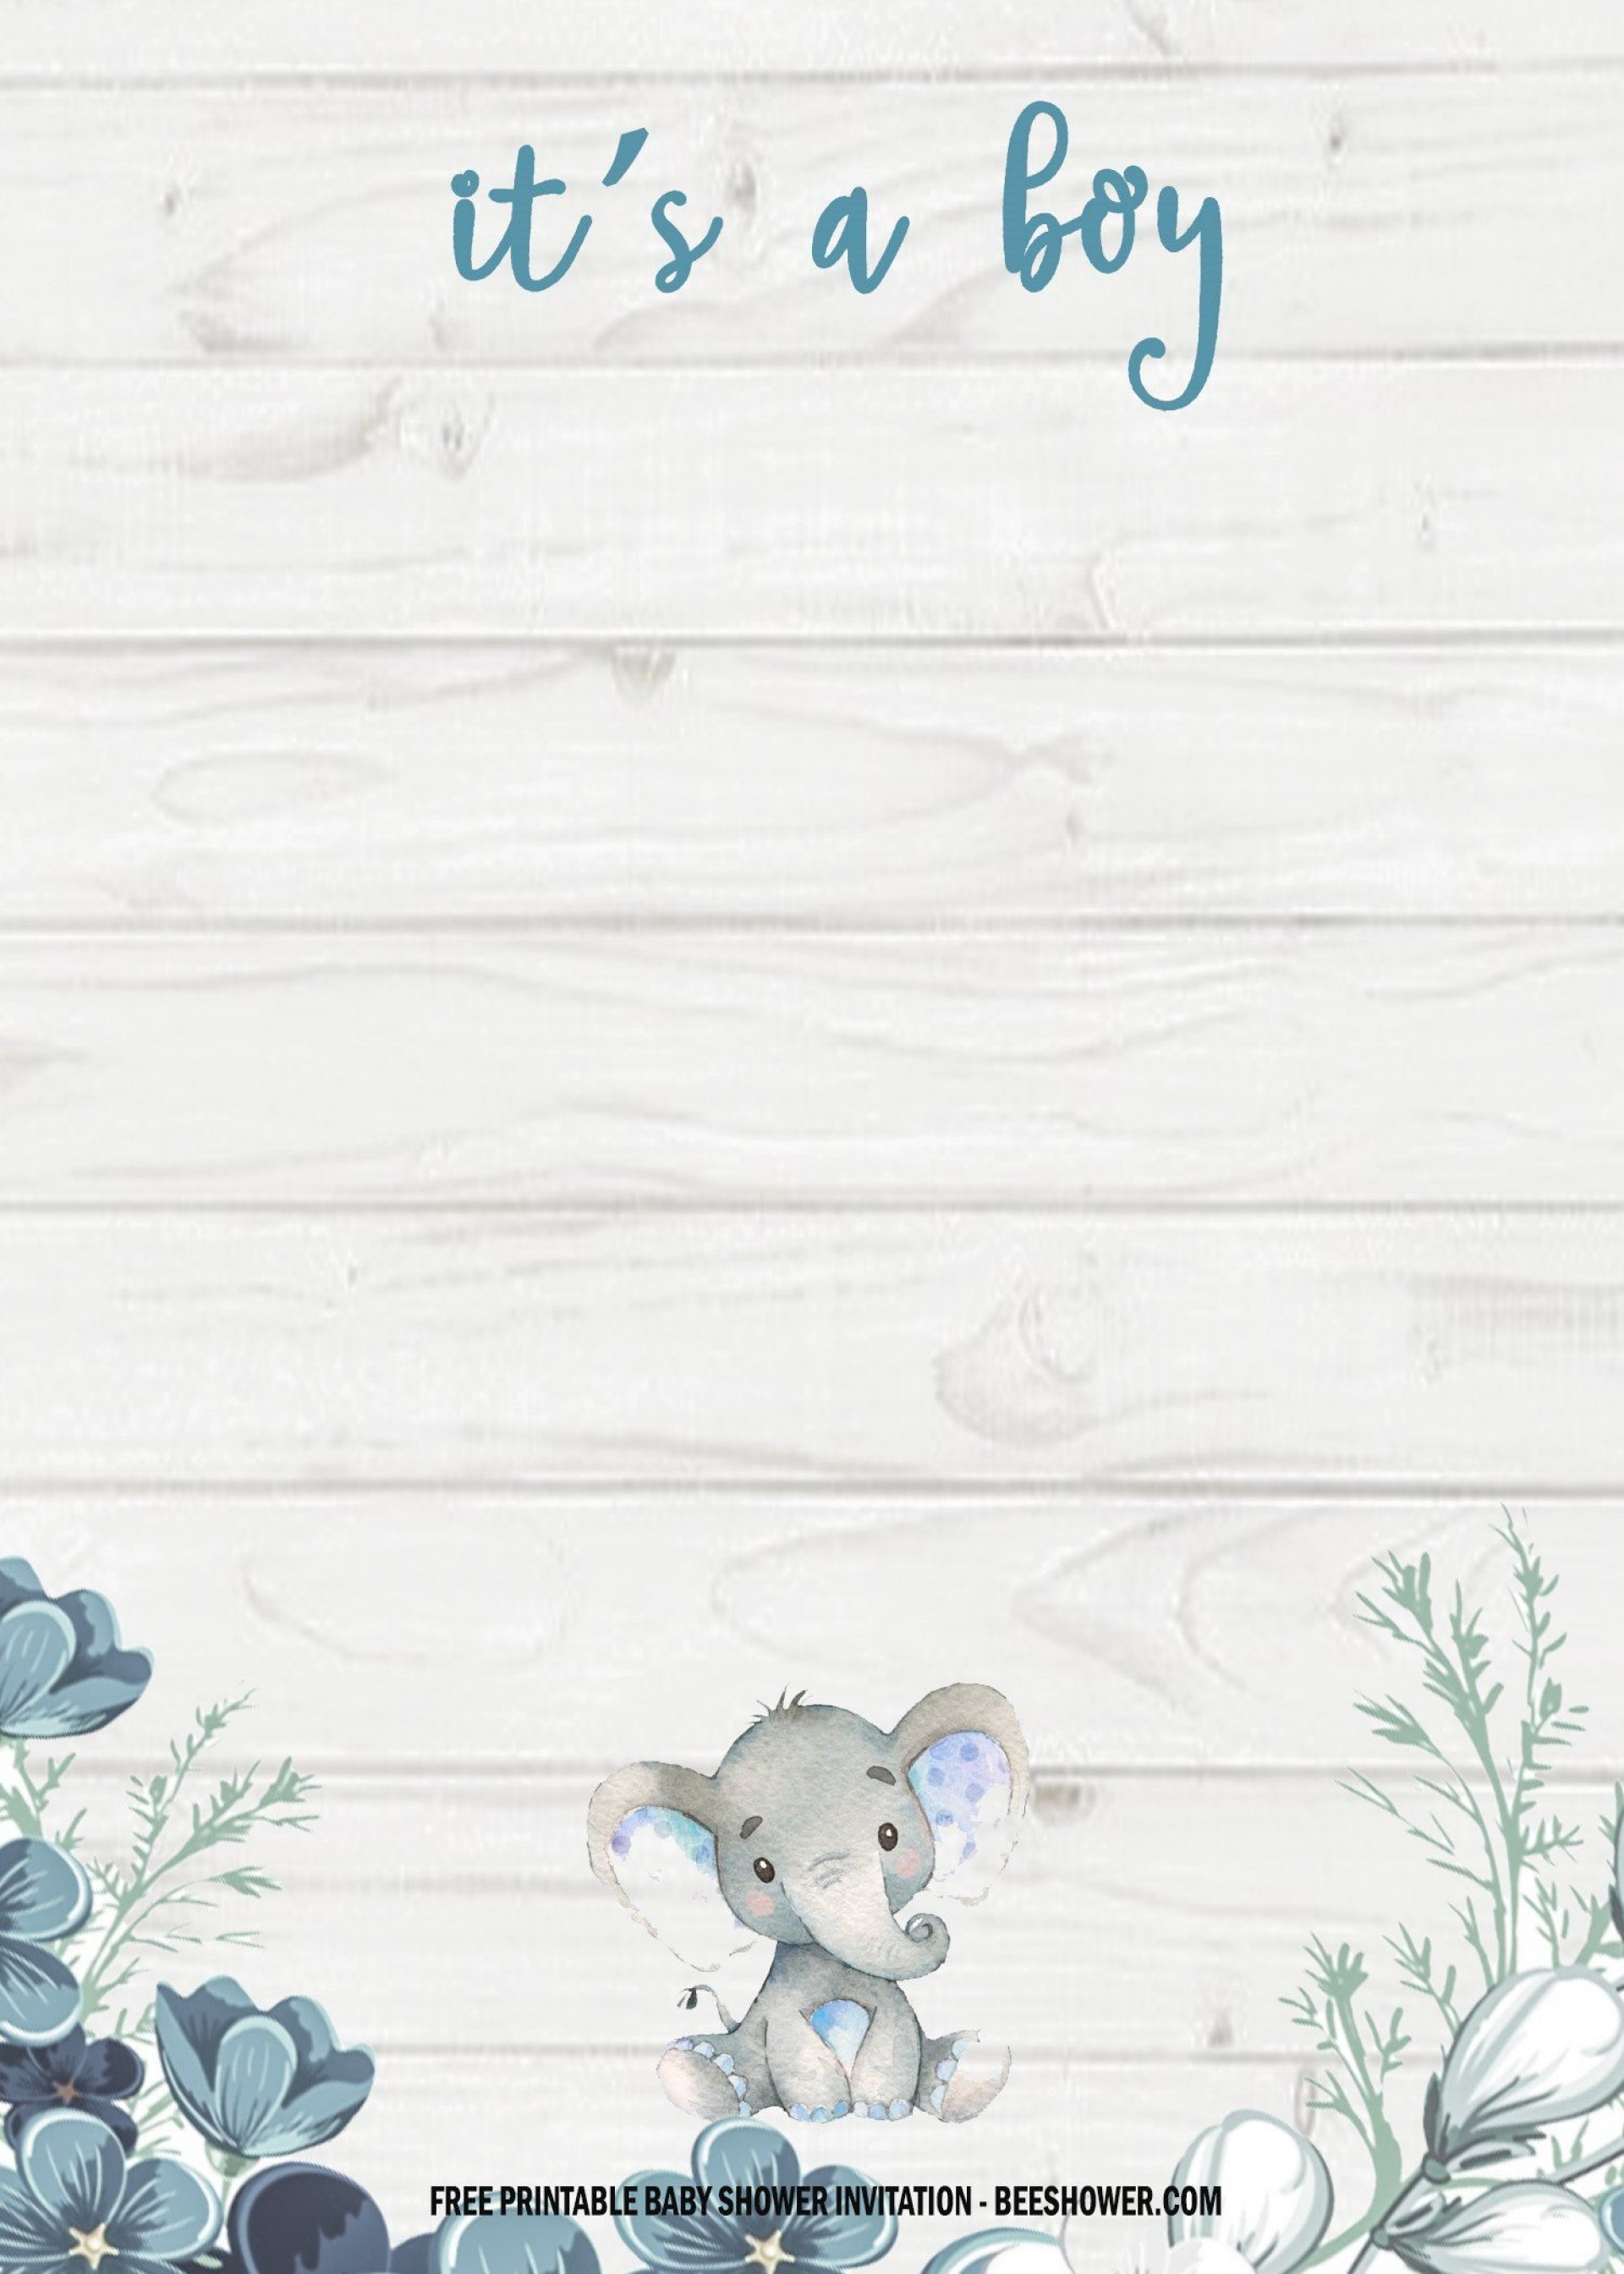 000 Unique Baby Shower Card Design Free Photo  Template Microsoft Word Boy Download1920